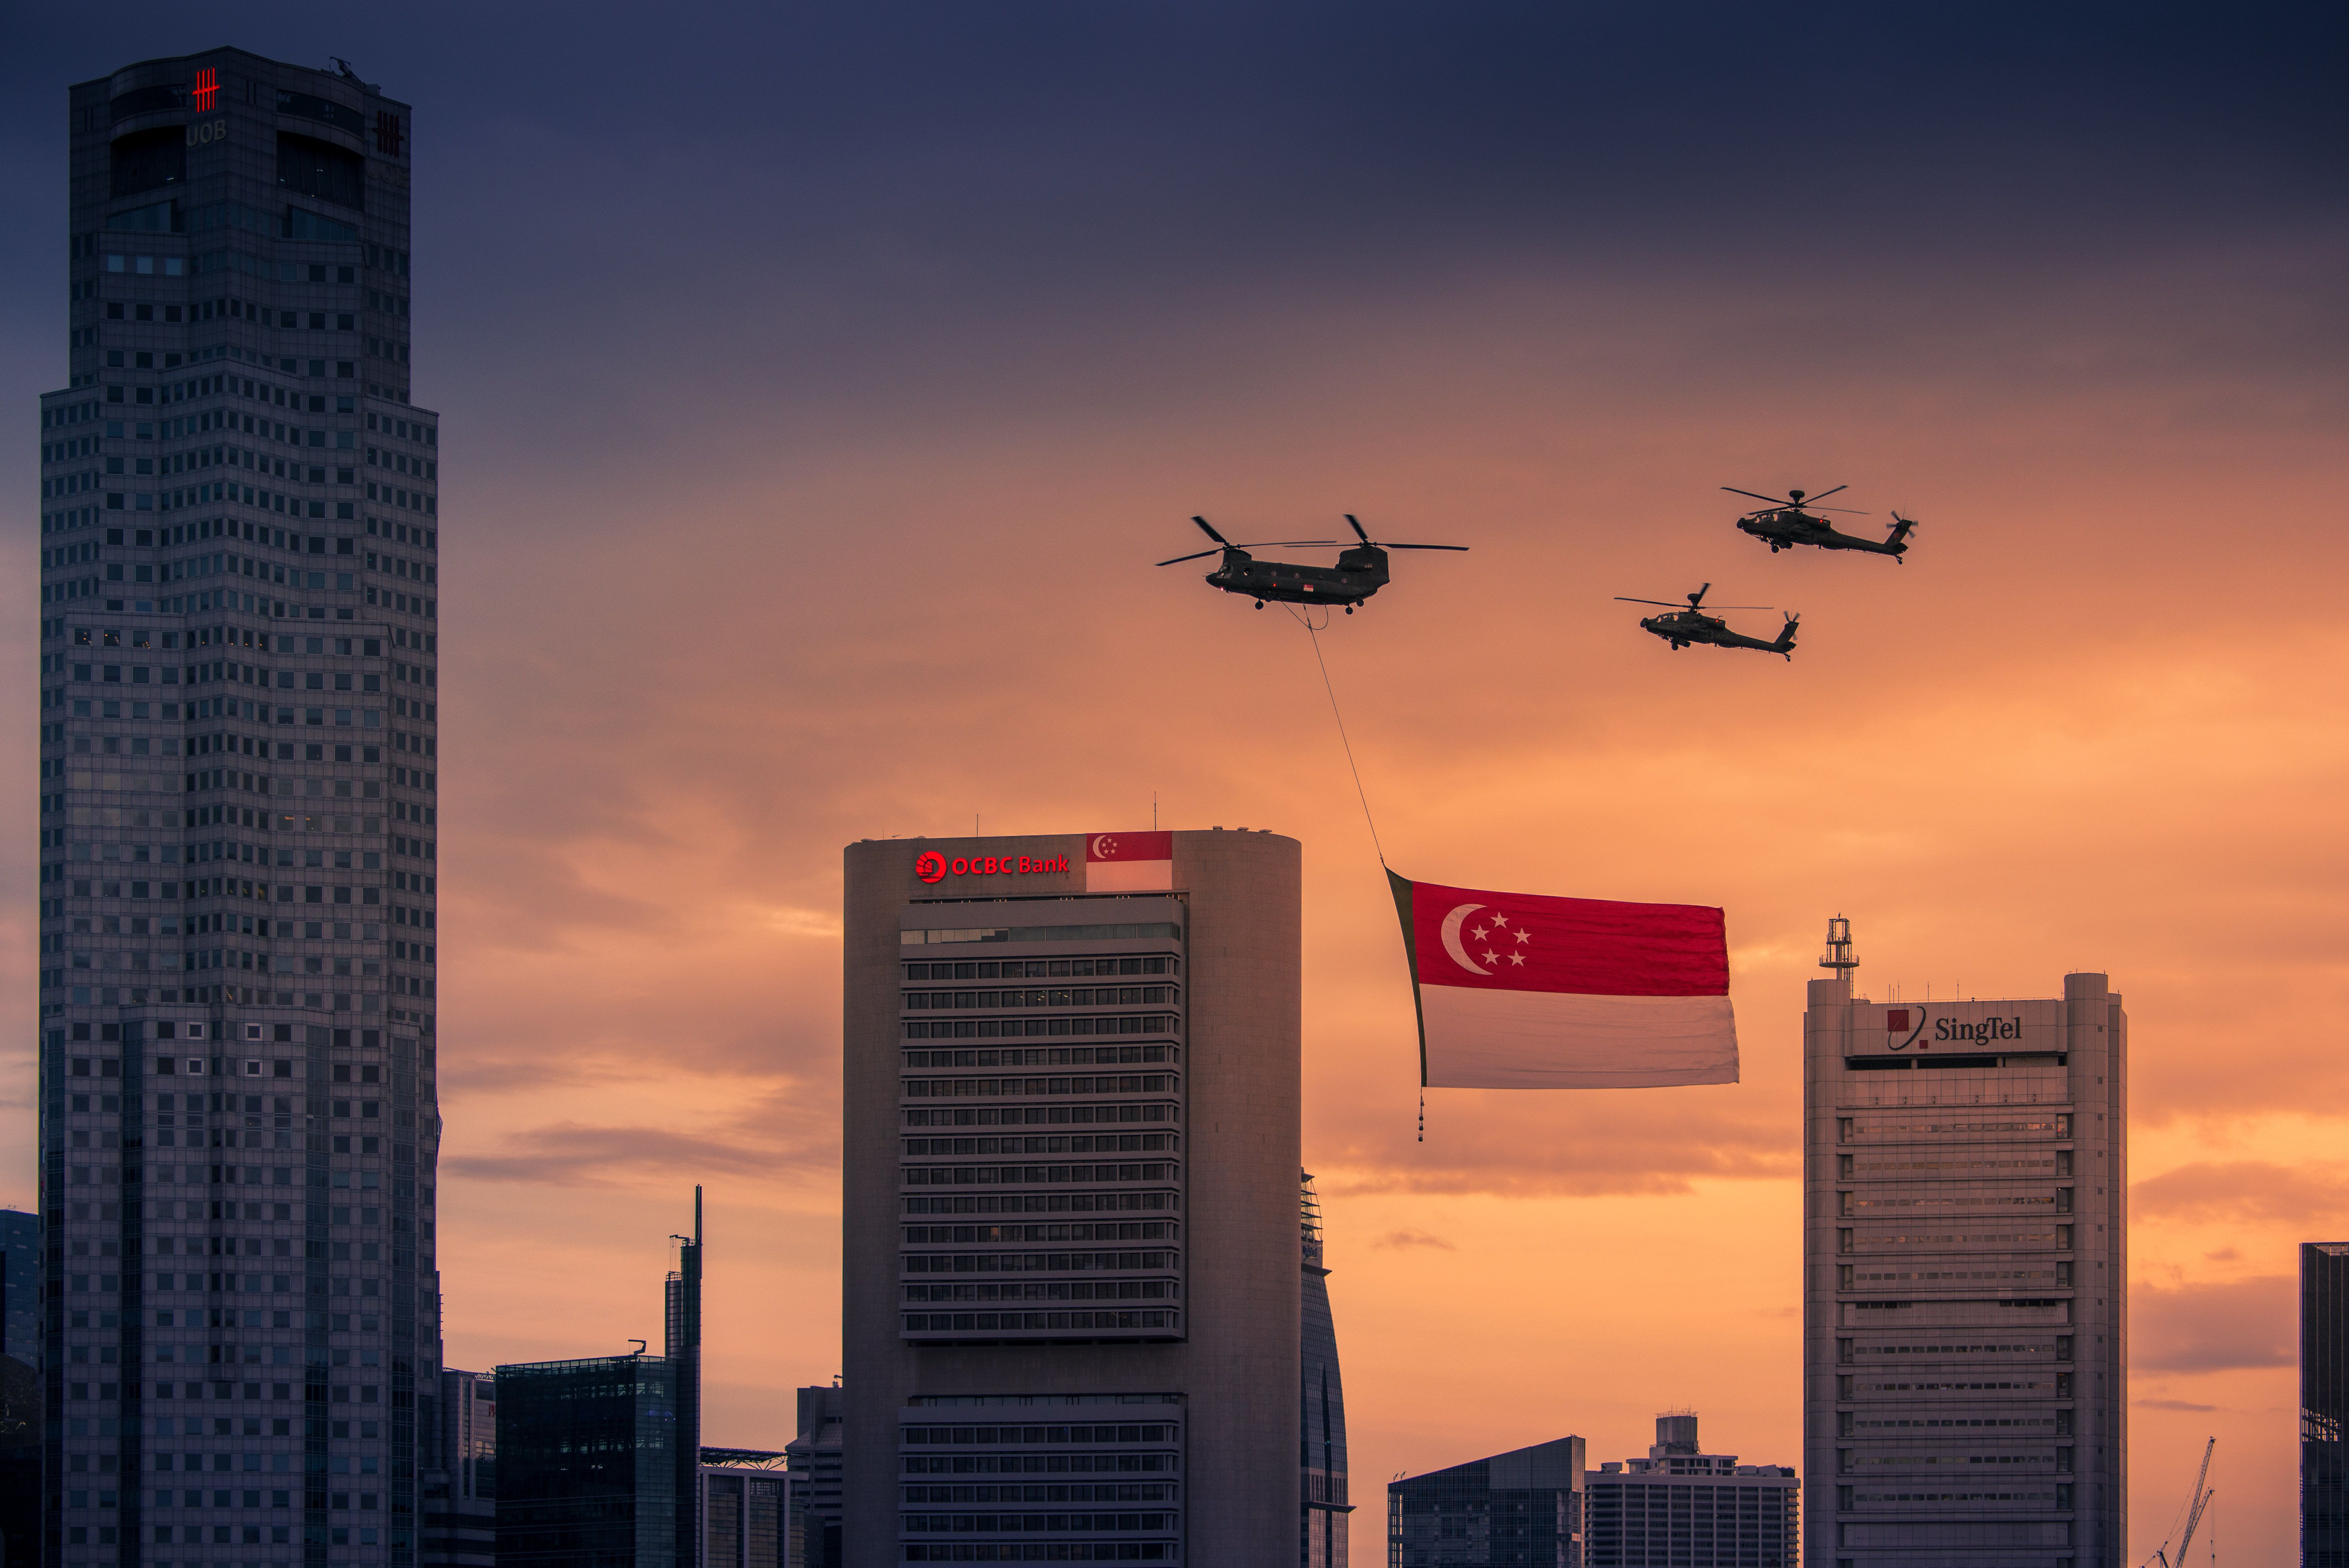 Chinook carrying the state flag, followed by 2 Apaches AH64D during the National Day Parade Marina Bay on August 9, 2014 in Singapore. It is Singapore's 49th birthday with a parade theme of 'Our People, Our Home'.